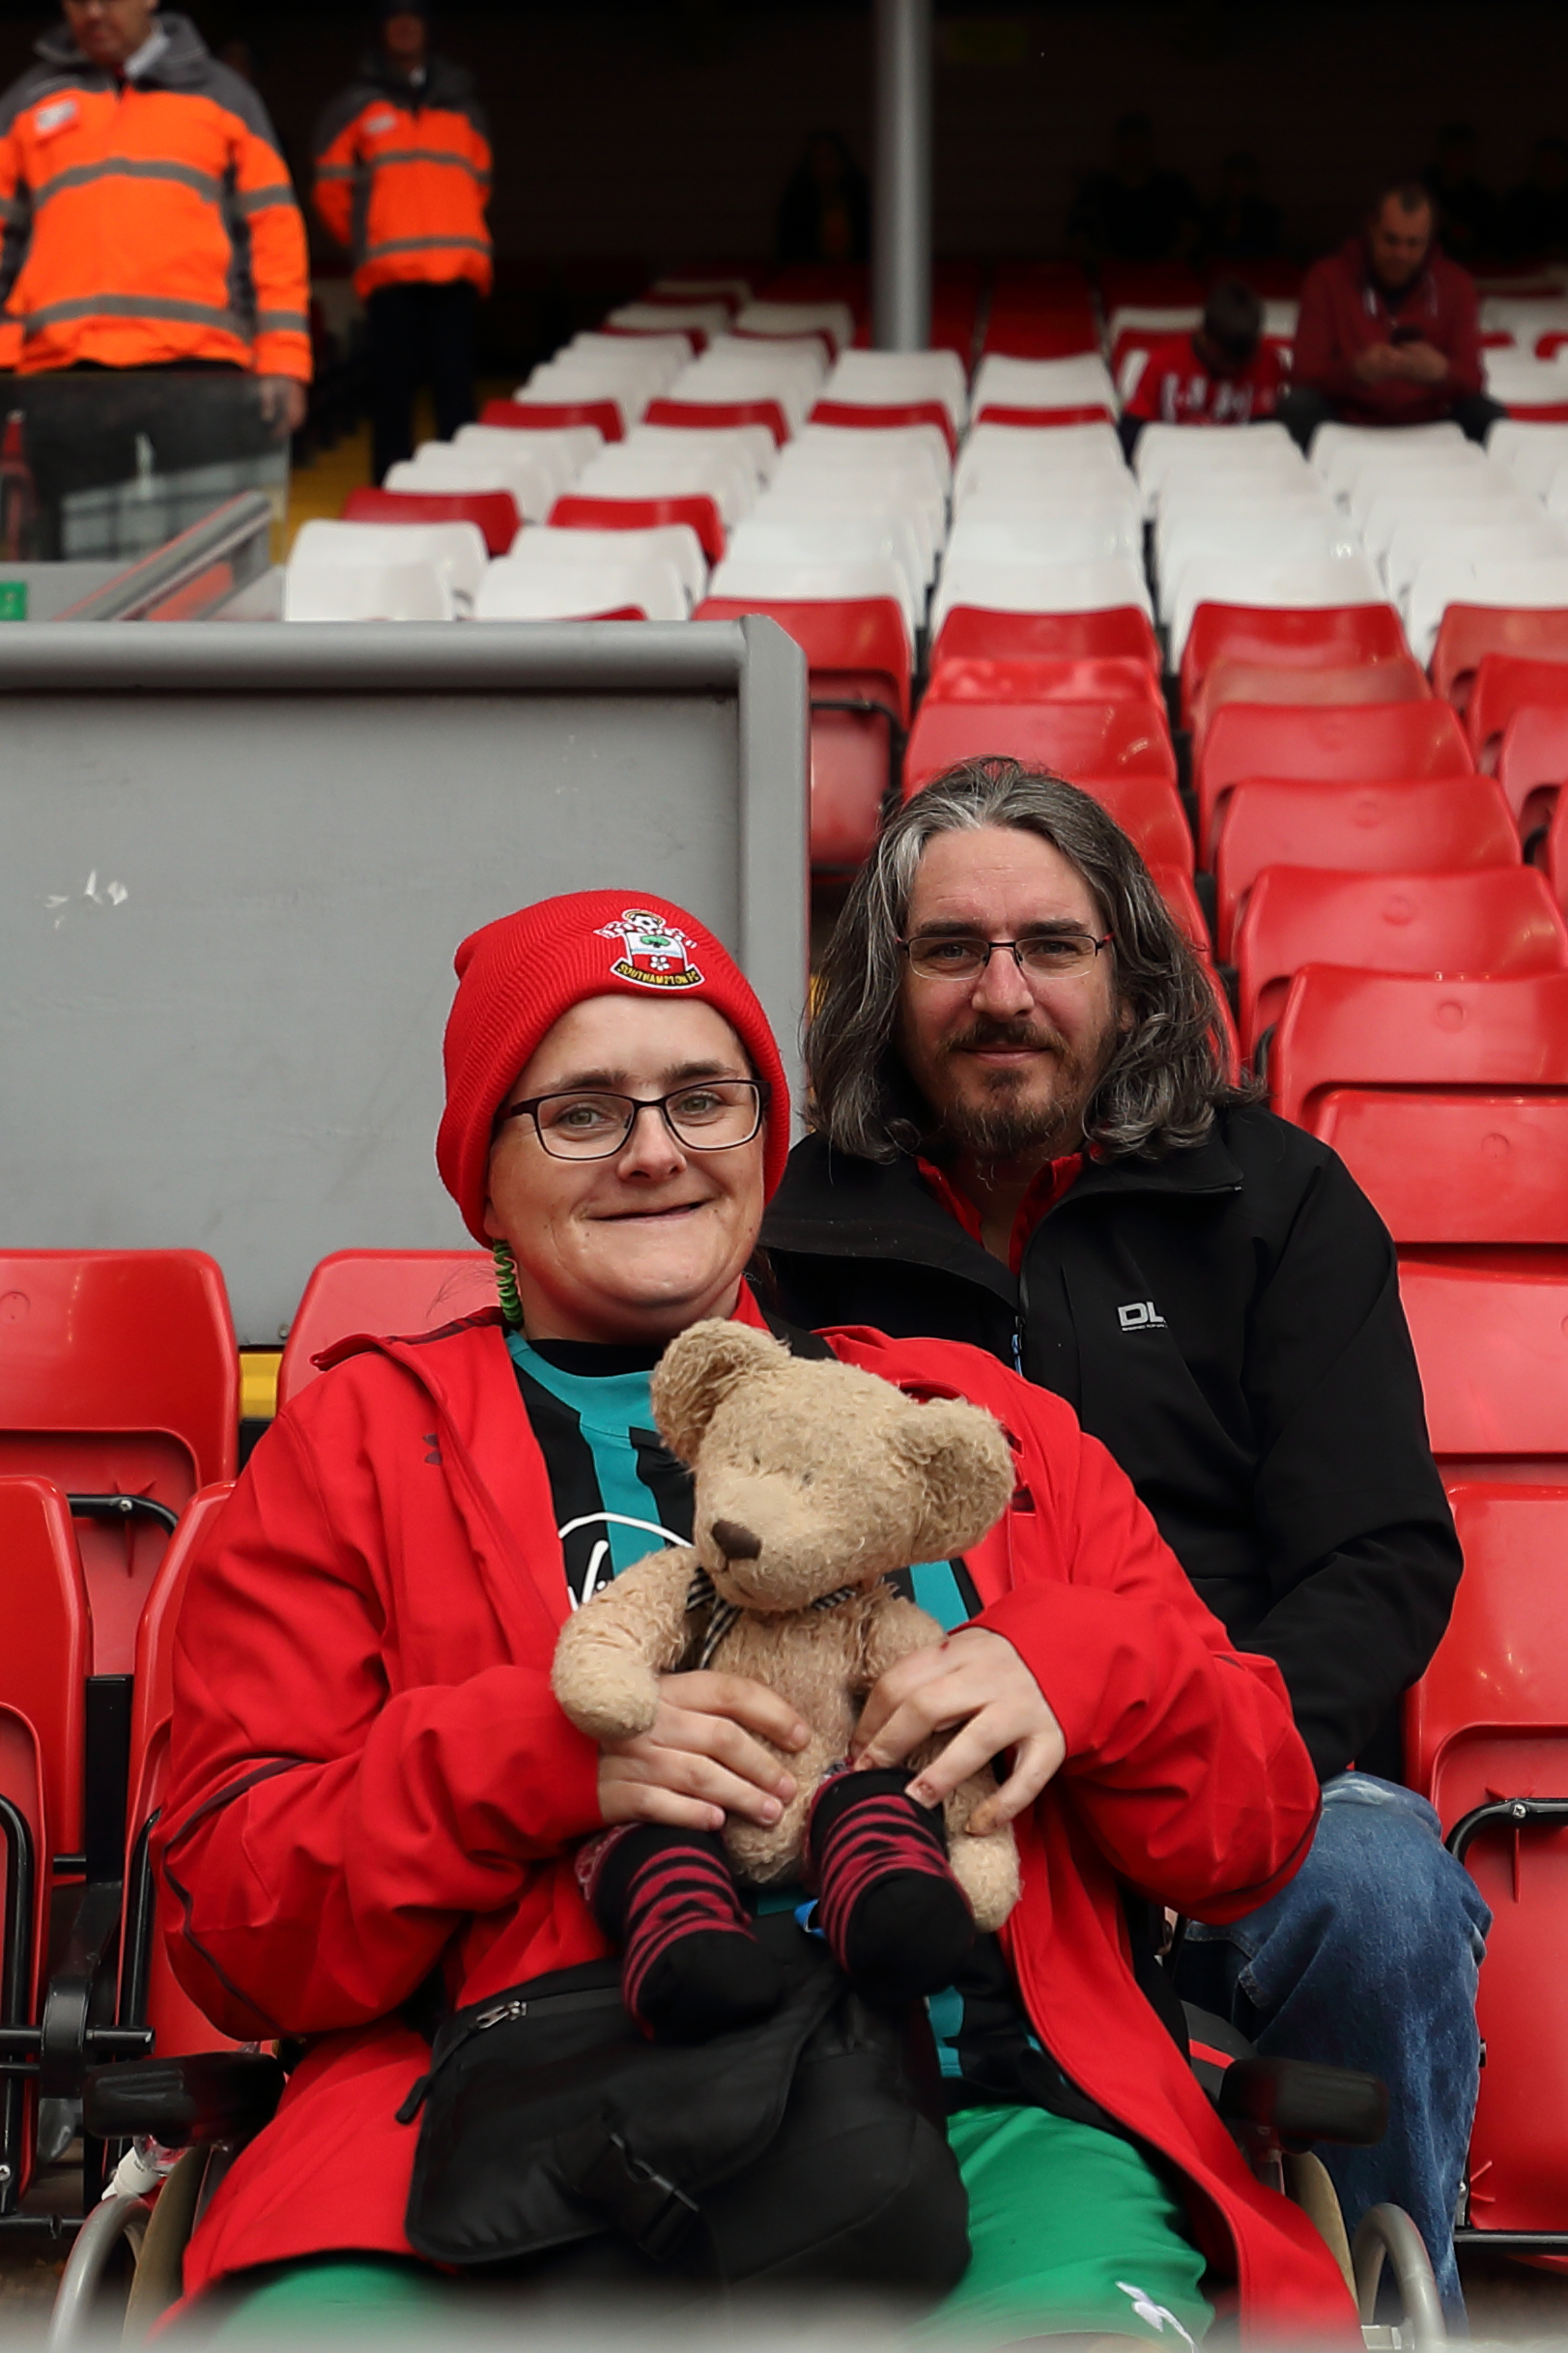 Liverpool v Saints - are you in our fan pictures?